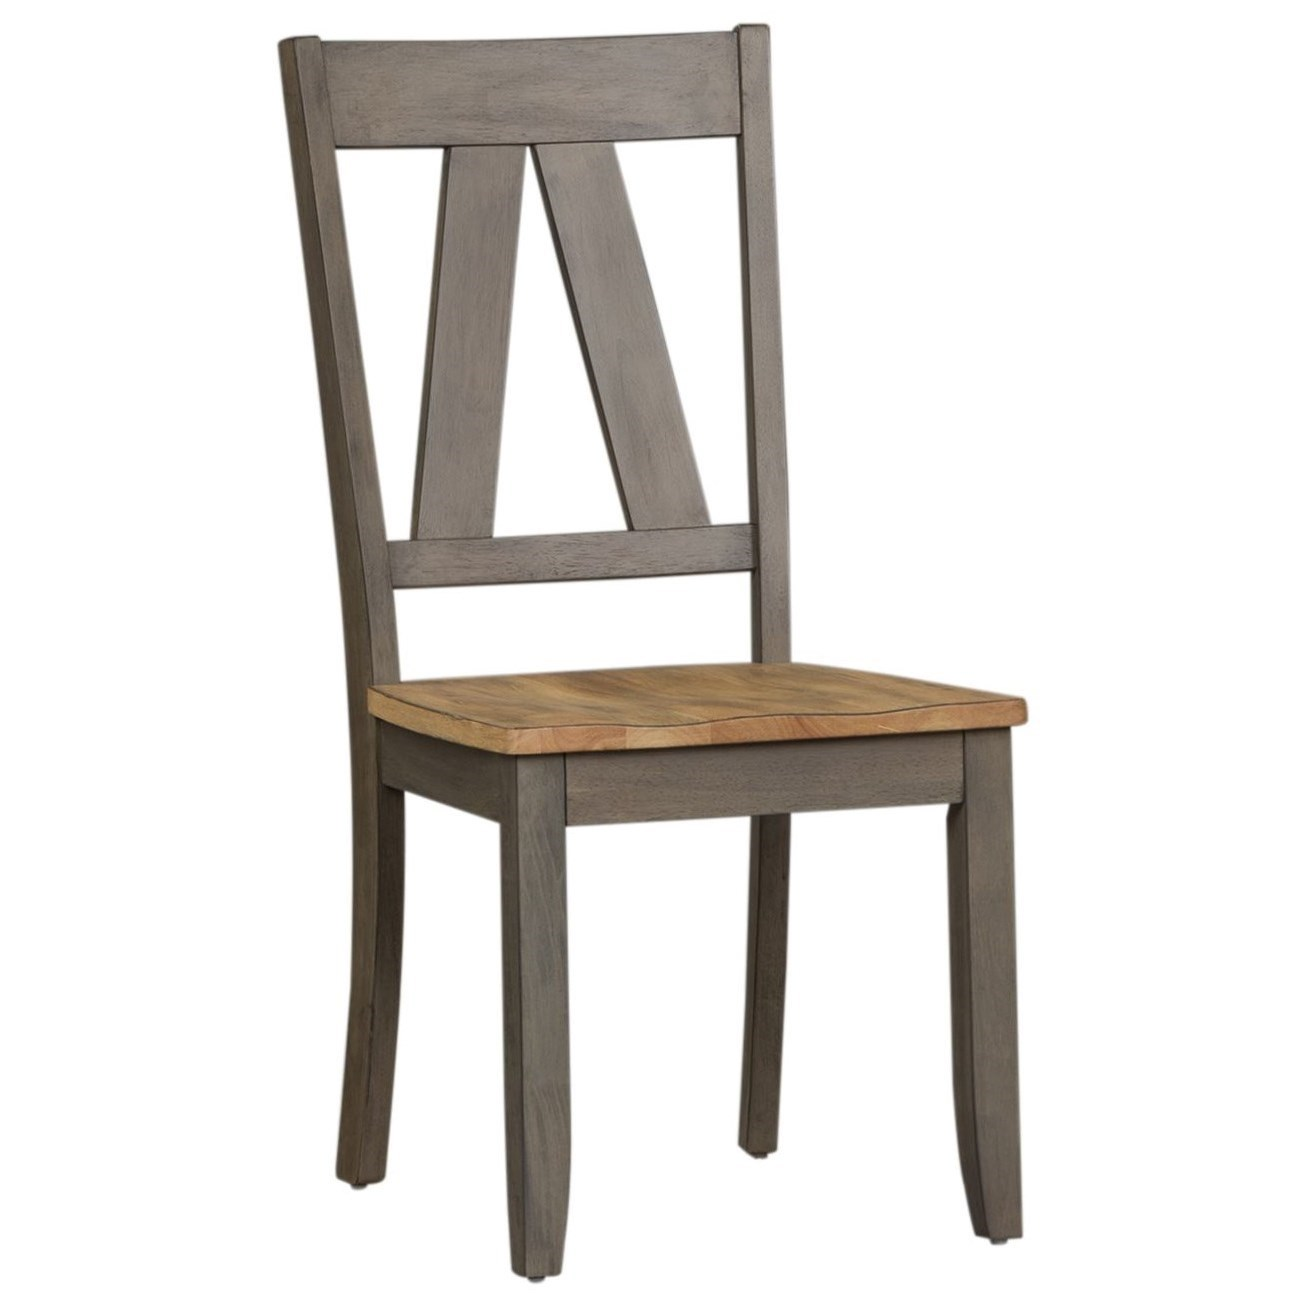 Lindsey Farm Splat Back Side Chair by Liberty Furniture at Northeast Factory Direct